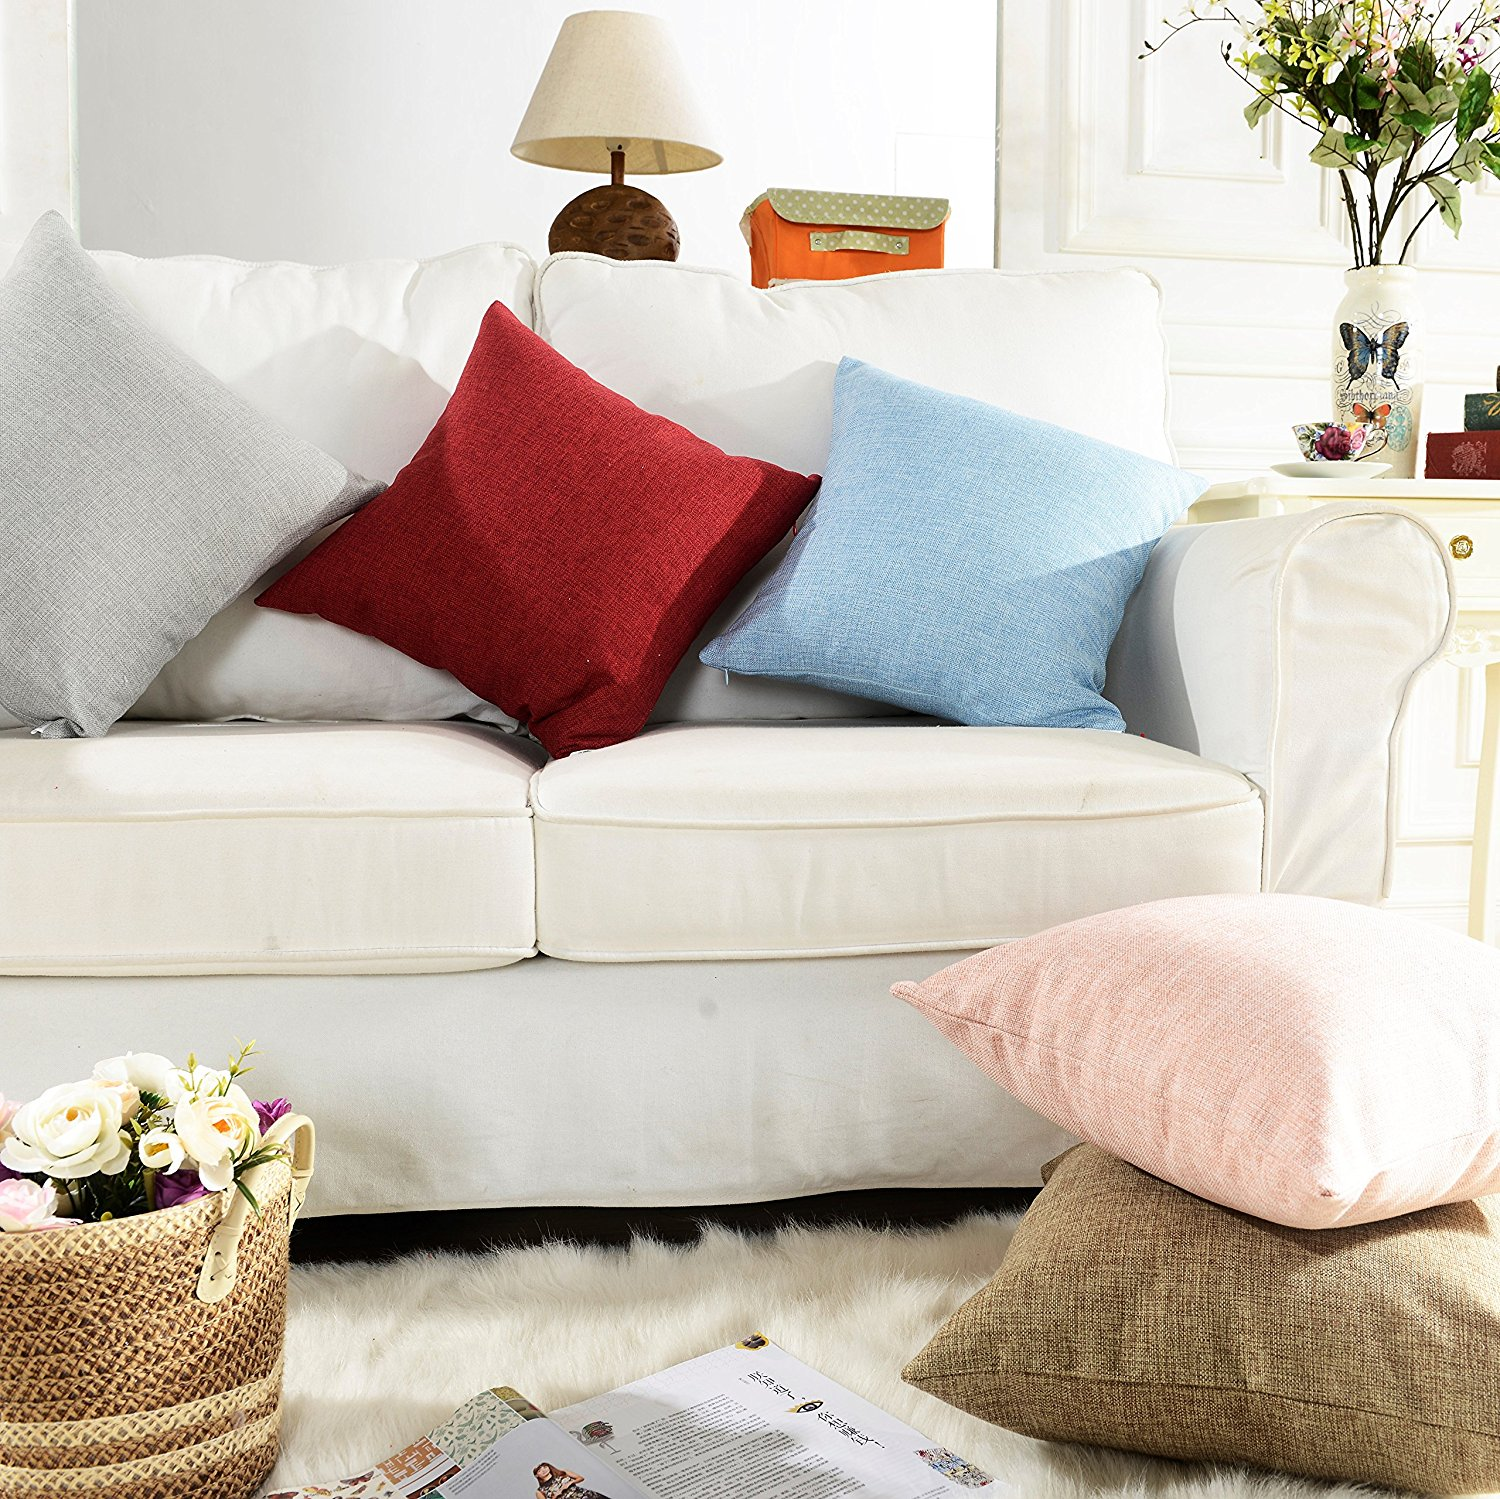 Top 10 Best Cushion Covers in 2017